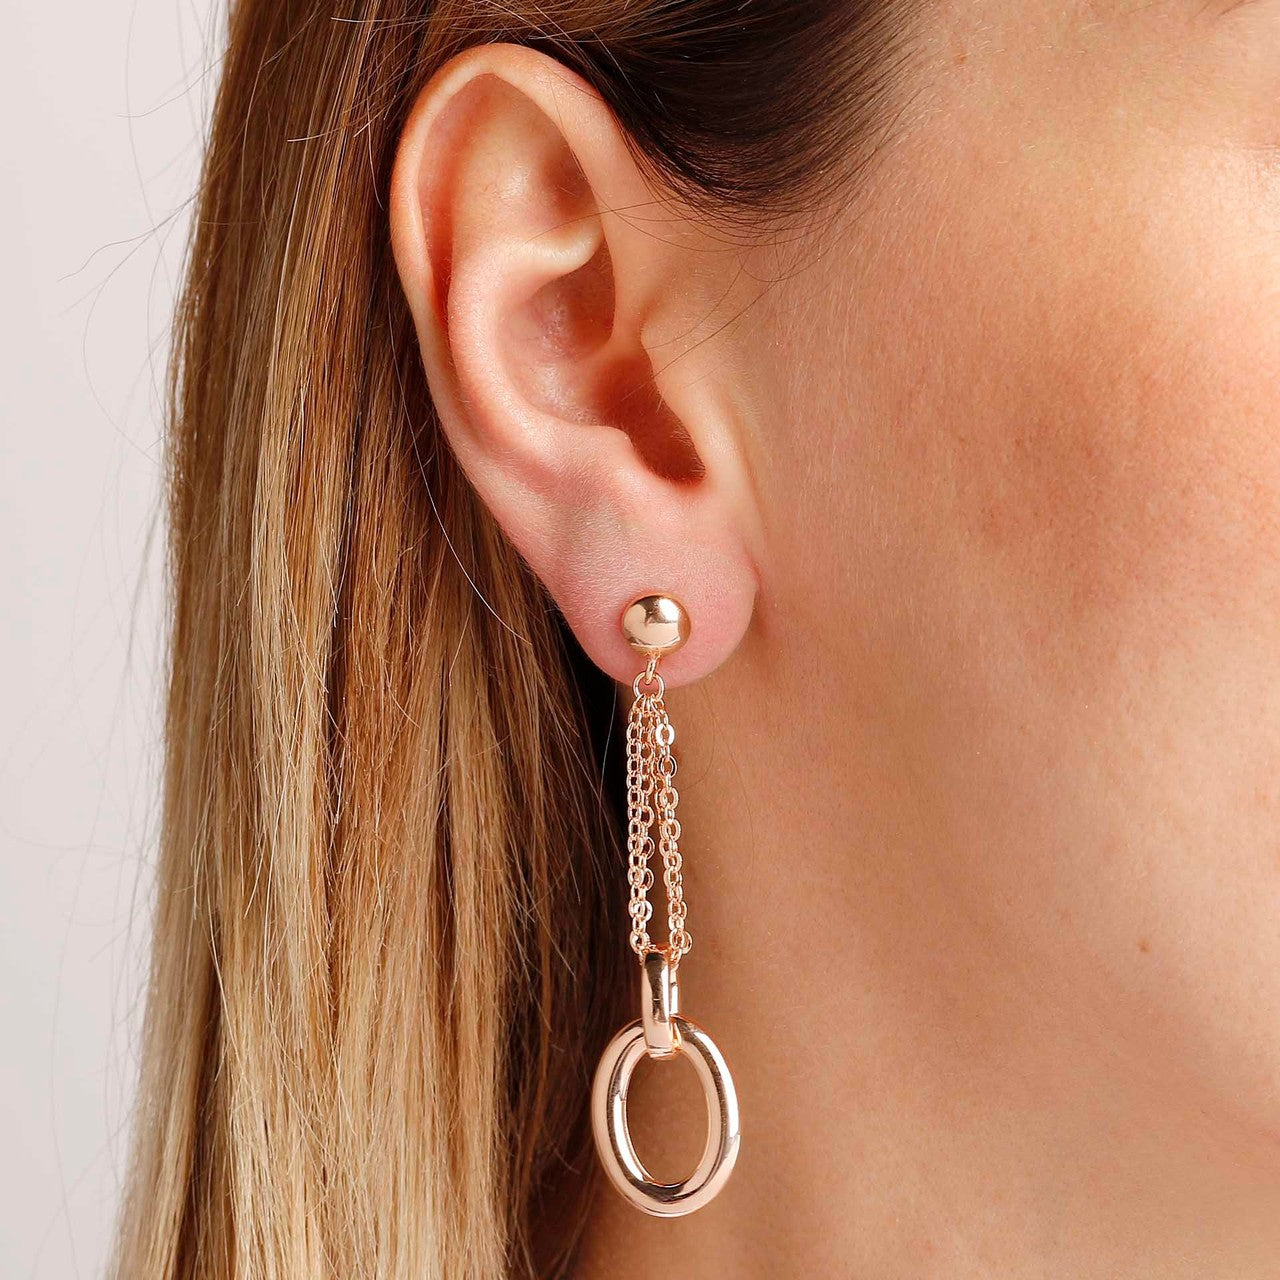 worn Long chain earrings